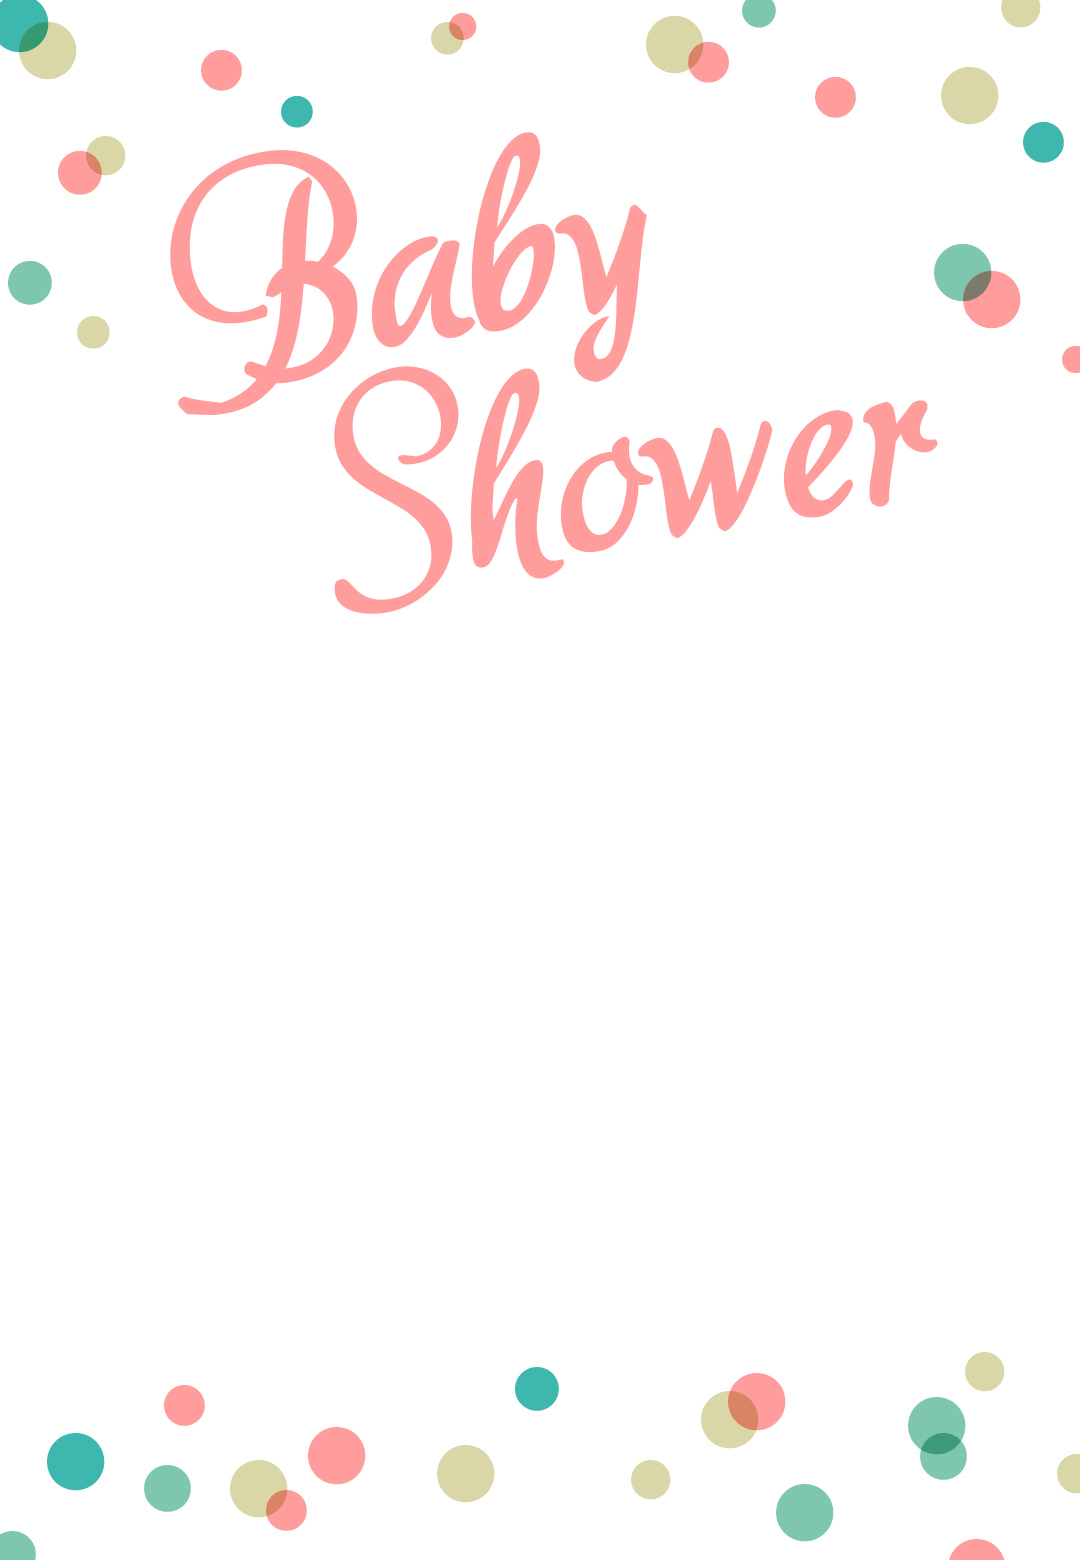 Modular Dancing Dots Borders - Free Printable Baby Shower Invitation regarding Unique Baby Shower Borders